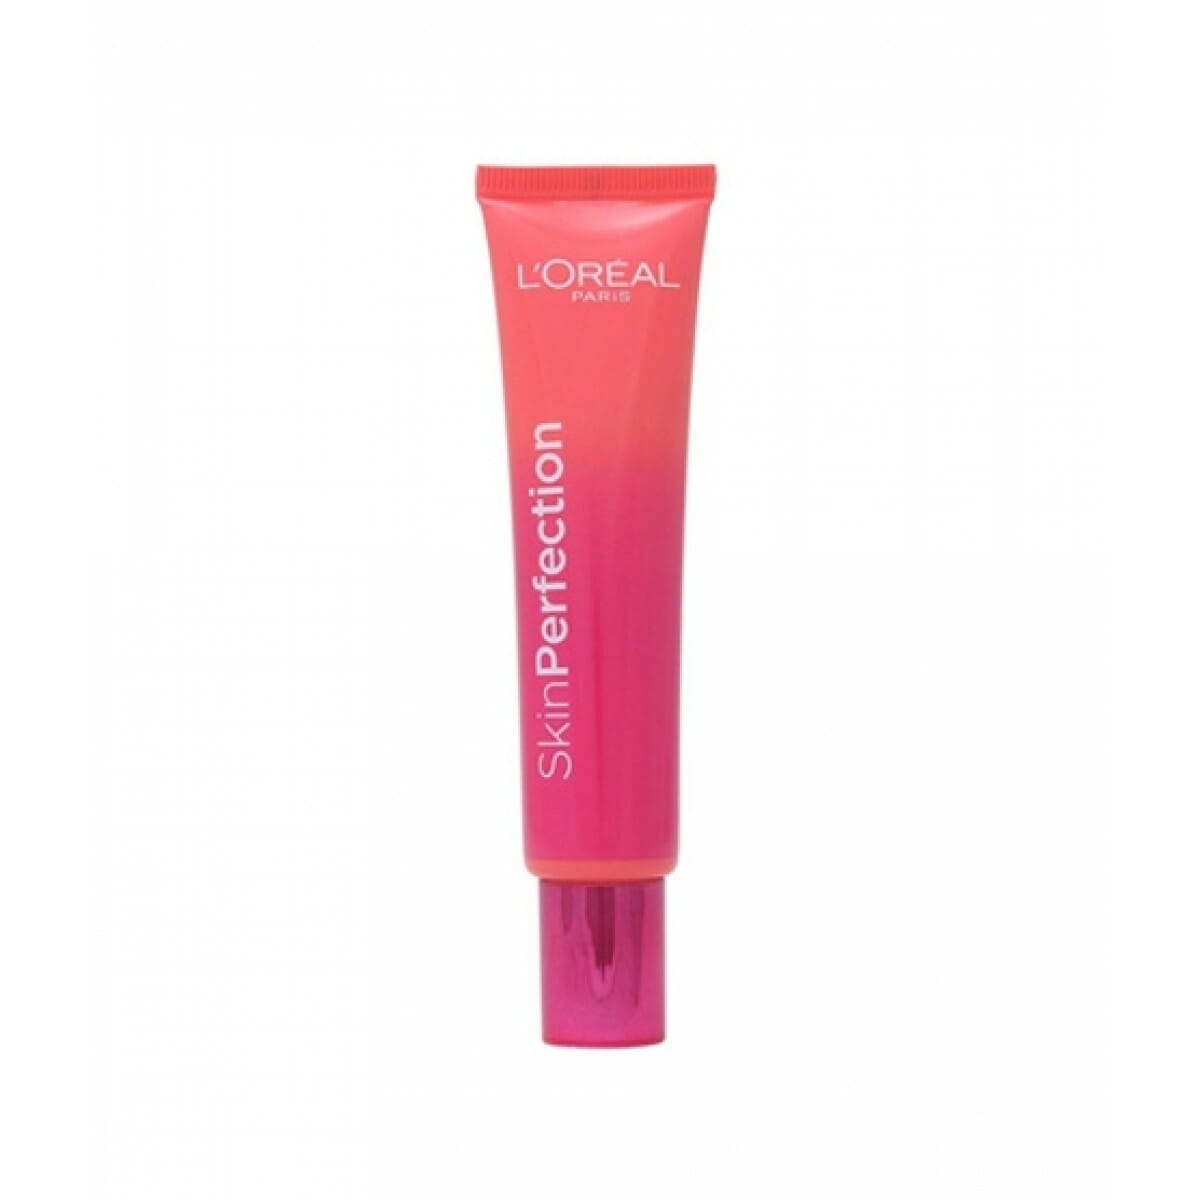 L'Oreal Skin Perfection Anti - Fatigue Daily Moisturiser Best Moisturizer for Face in Pakistan